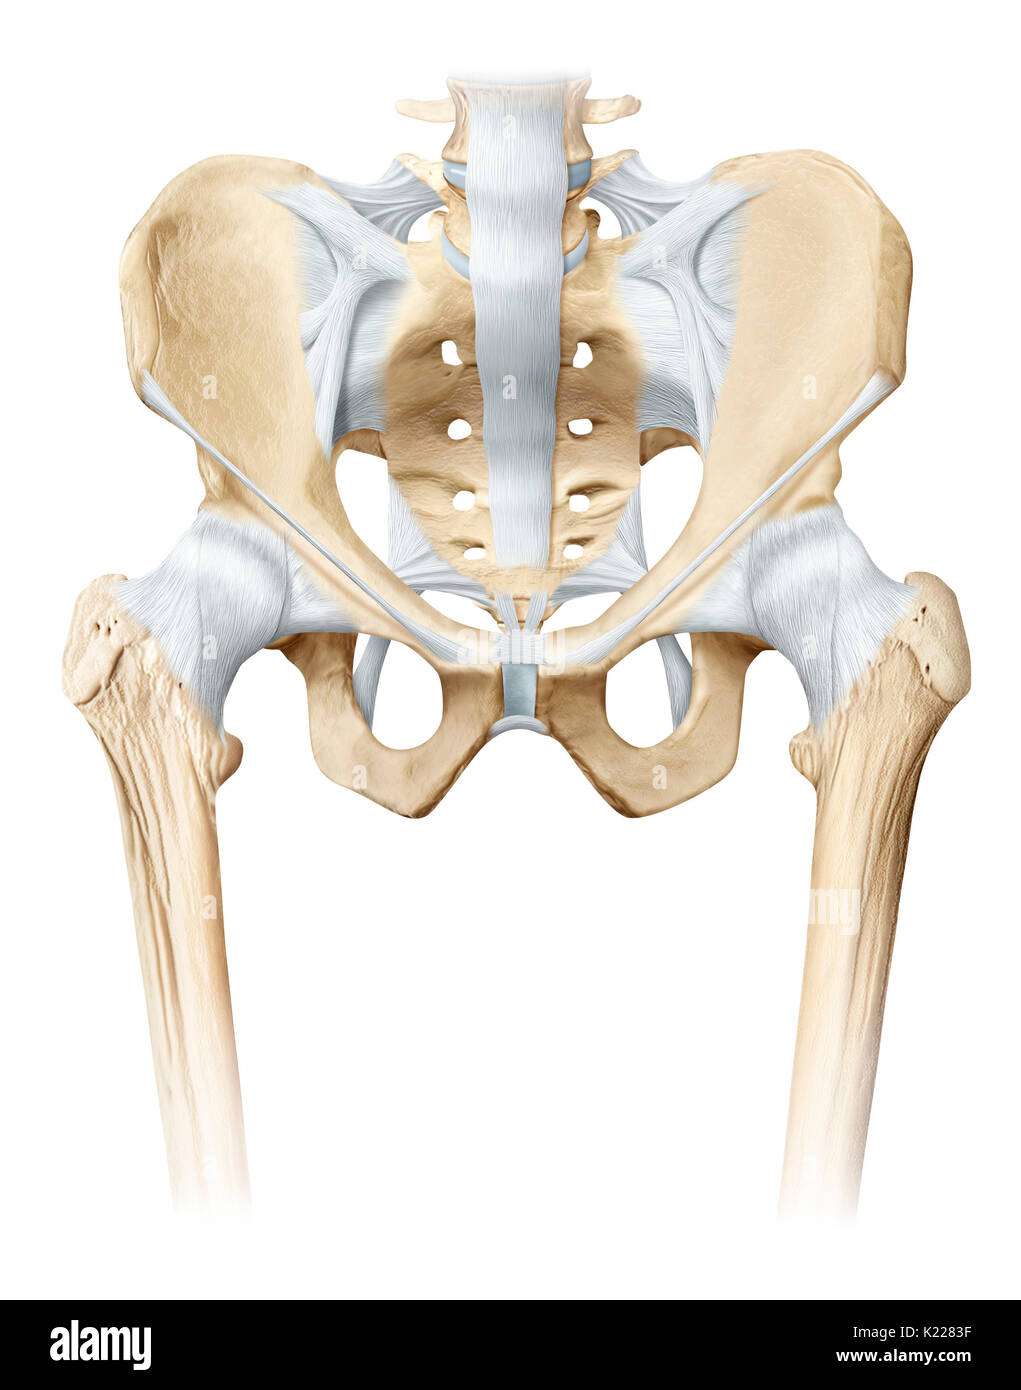 The Hip Is The Synovial Joint That Connects The Femur To The Iliac